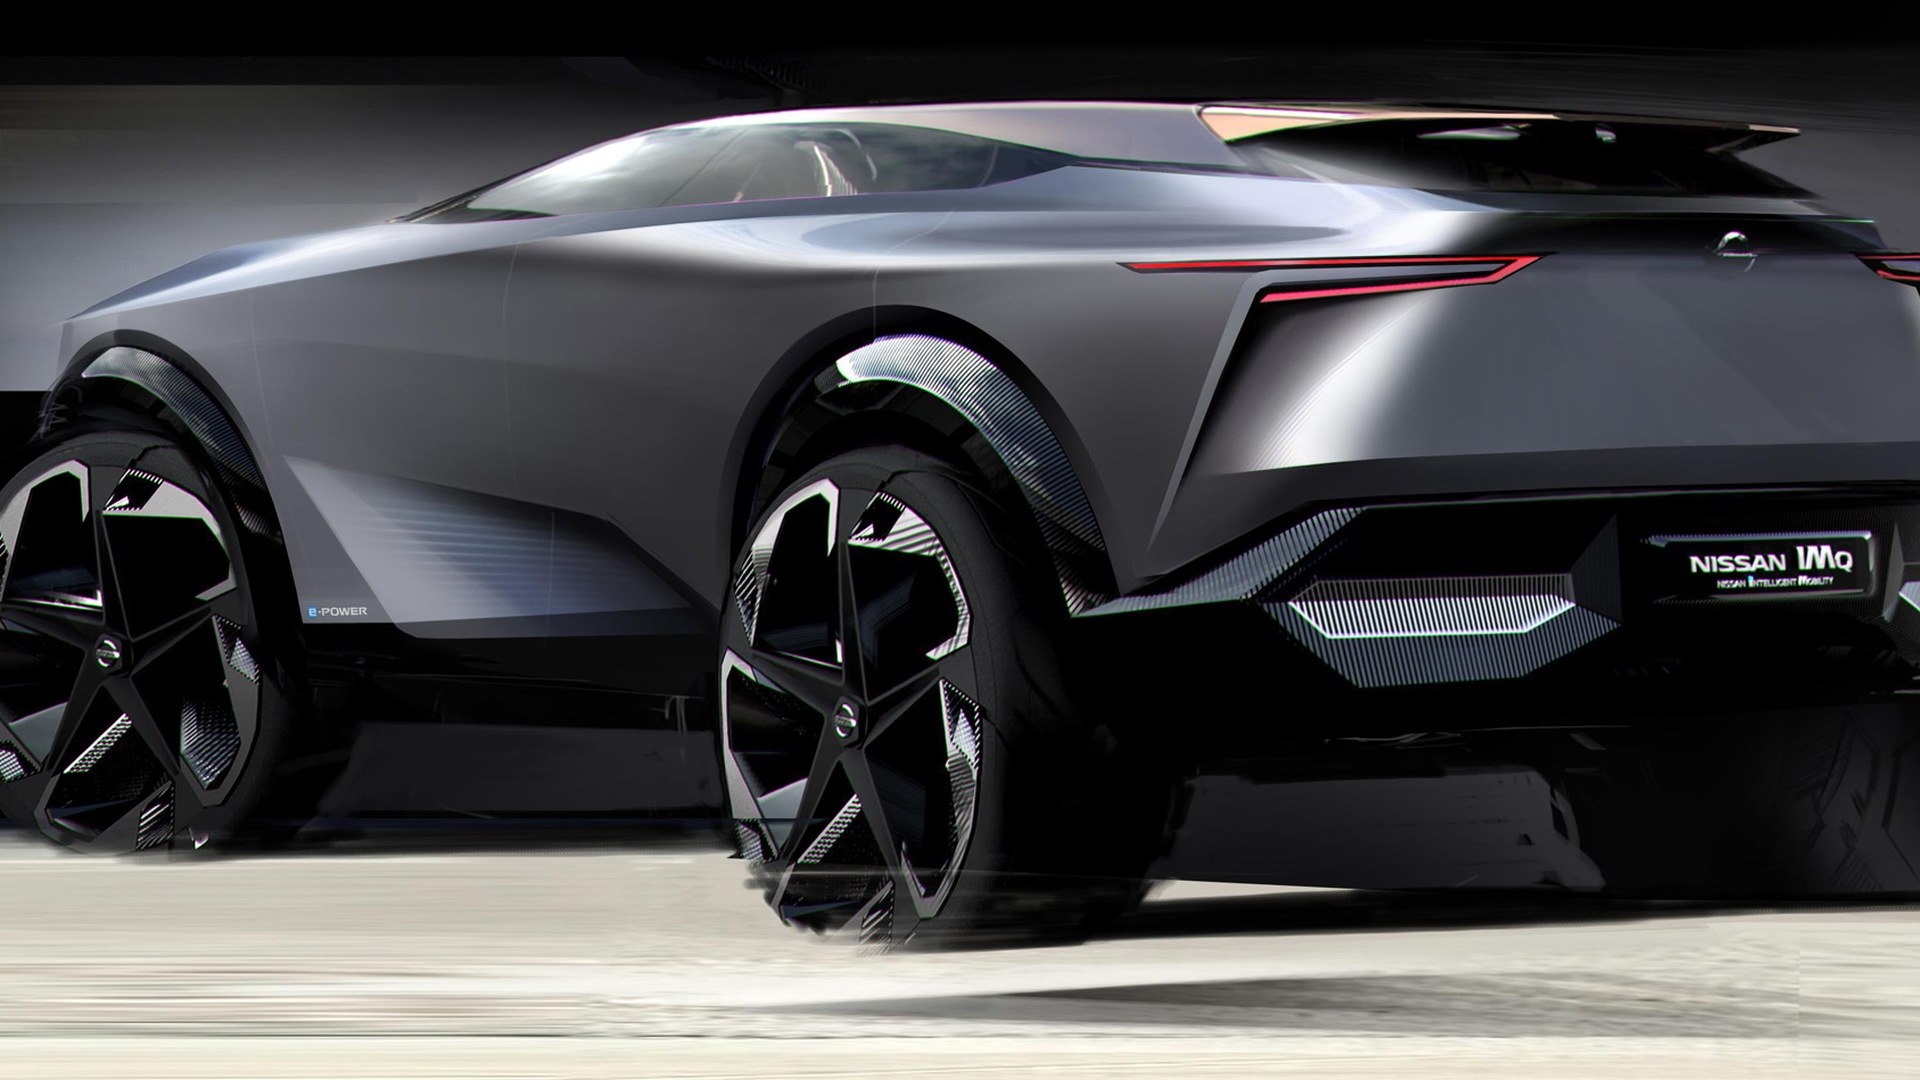 Teaser for Nissan IMQ concept debuting at 2019 Geneva auto show